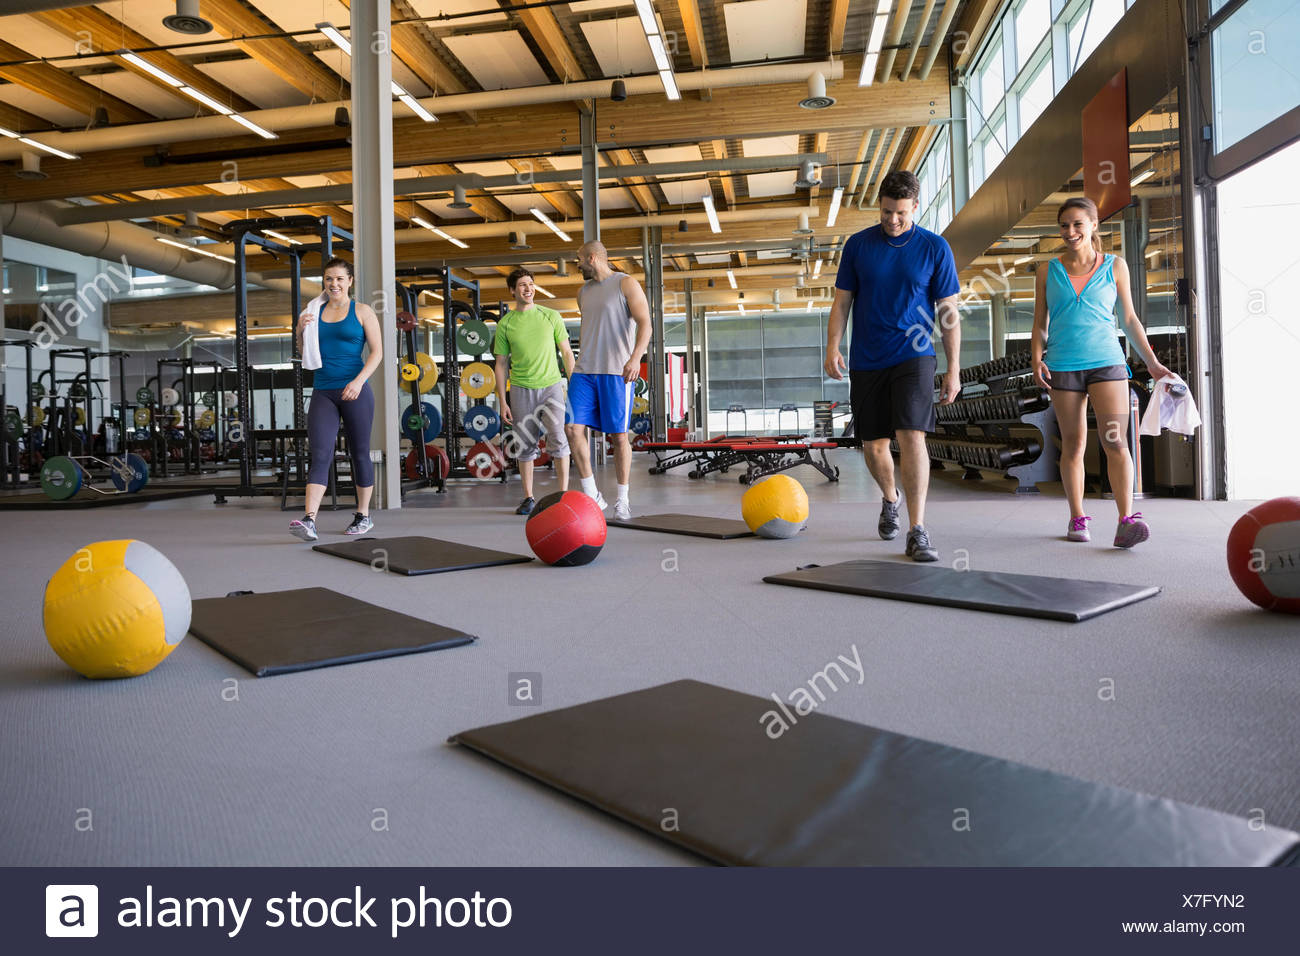 Exercise class approaching mats with medicine balls - Stock Image